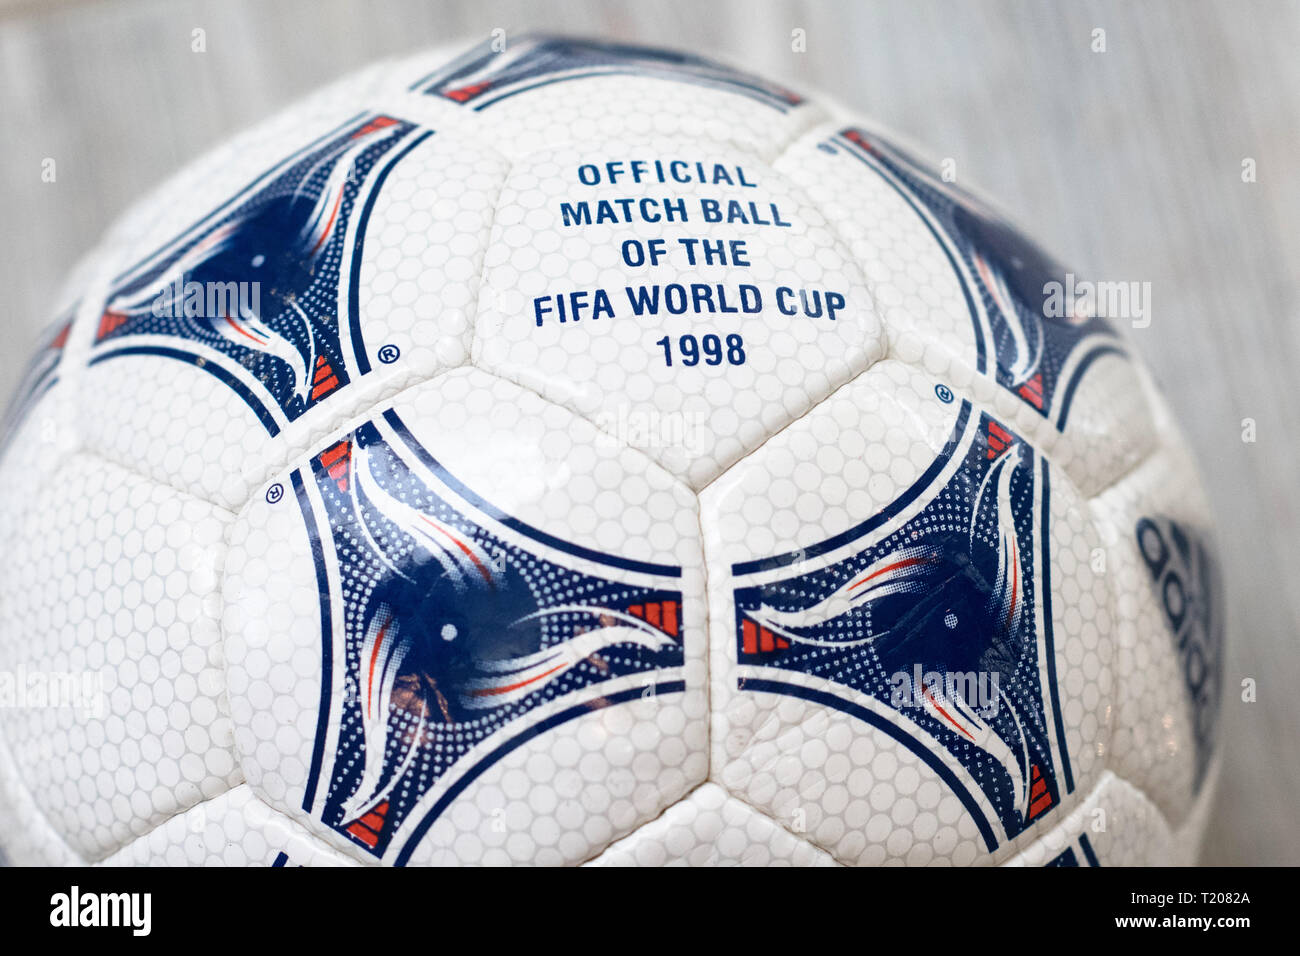 OFFICIAL MATCH BALL OF THE FIFA WORLD CUP 1998. - Stock Image